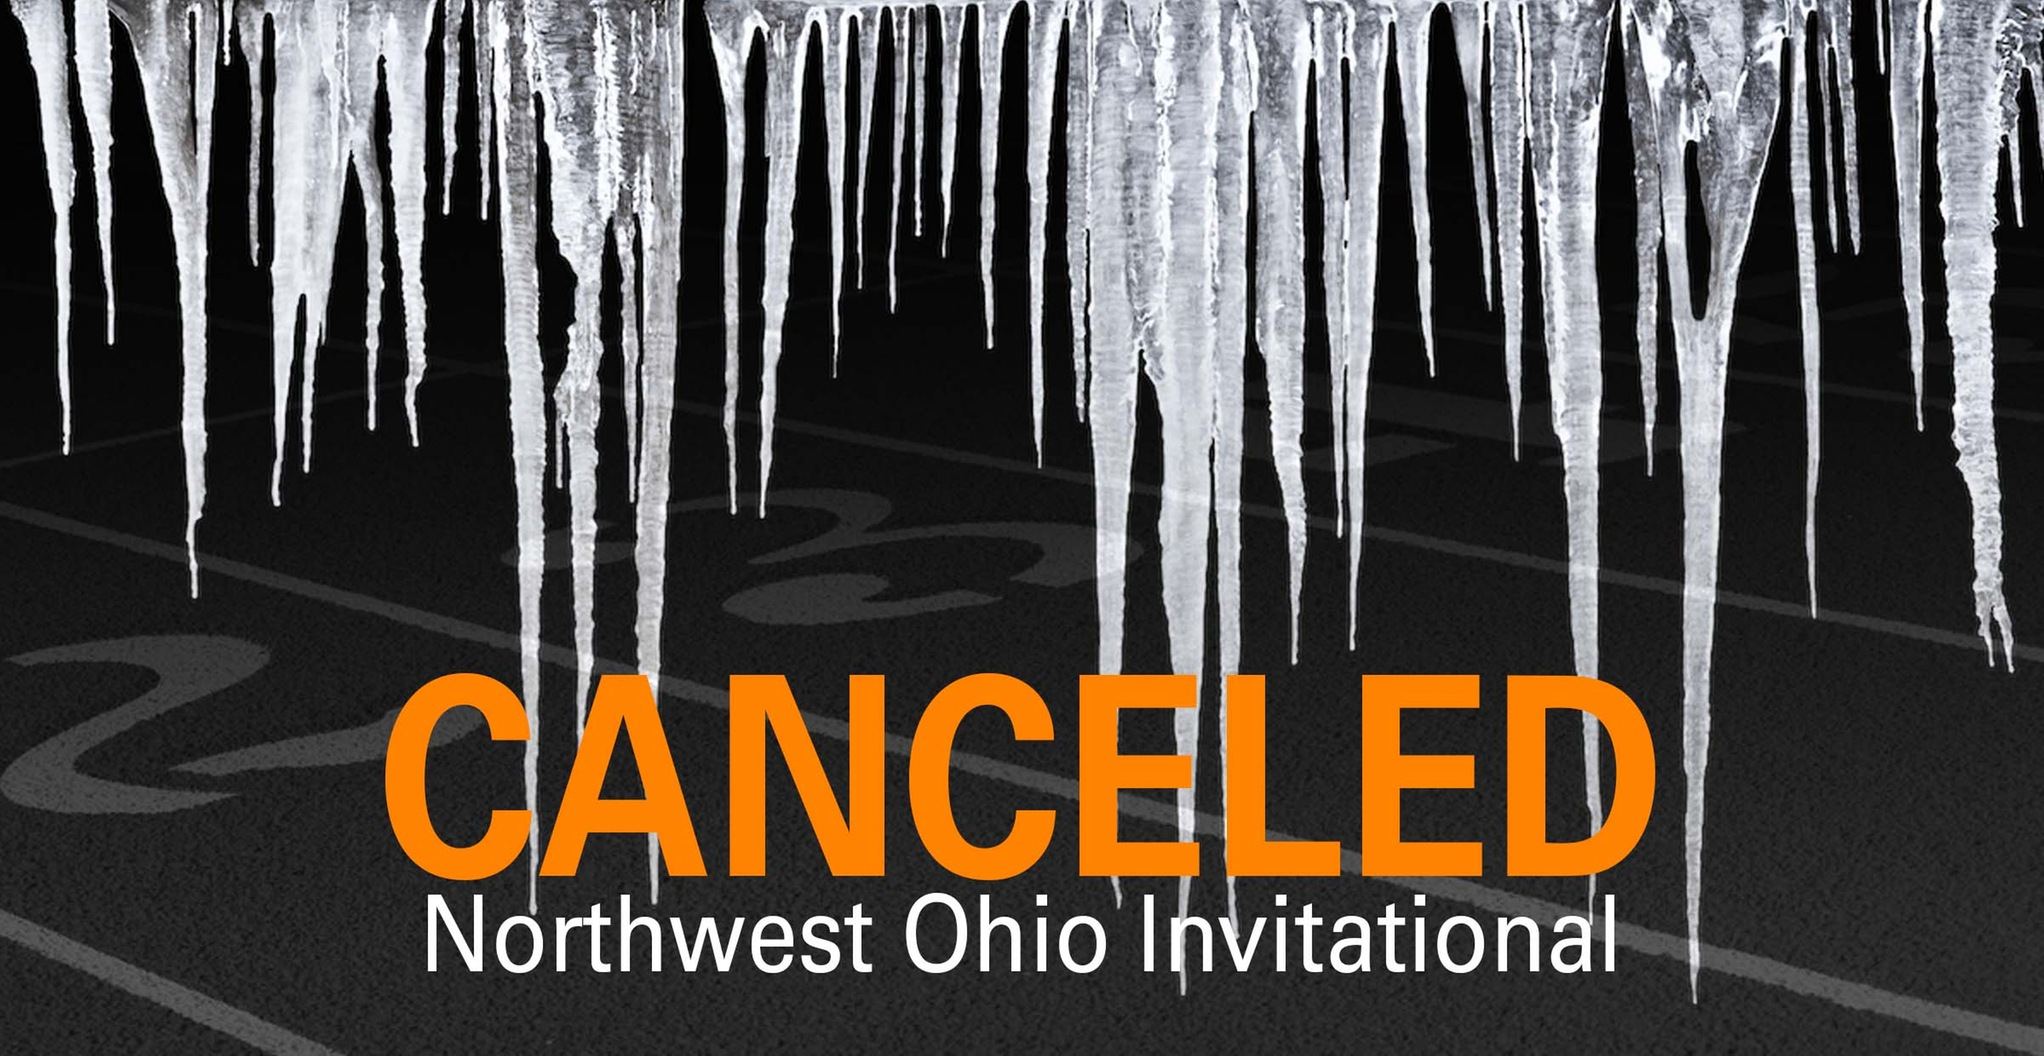 Northwest Ohio Invitational | UF High School Invite Canceled